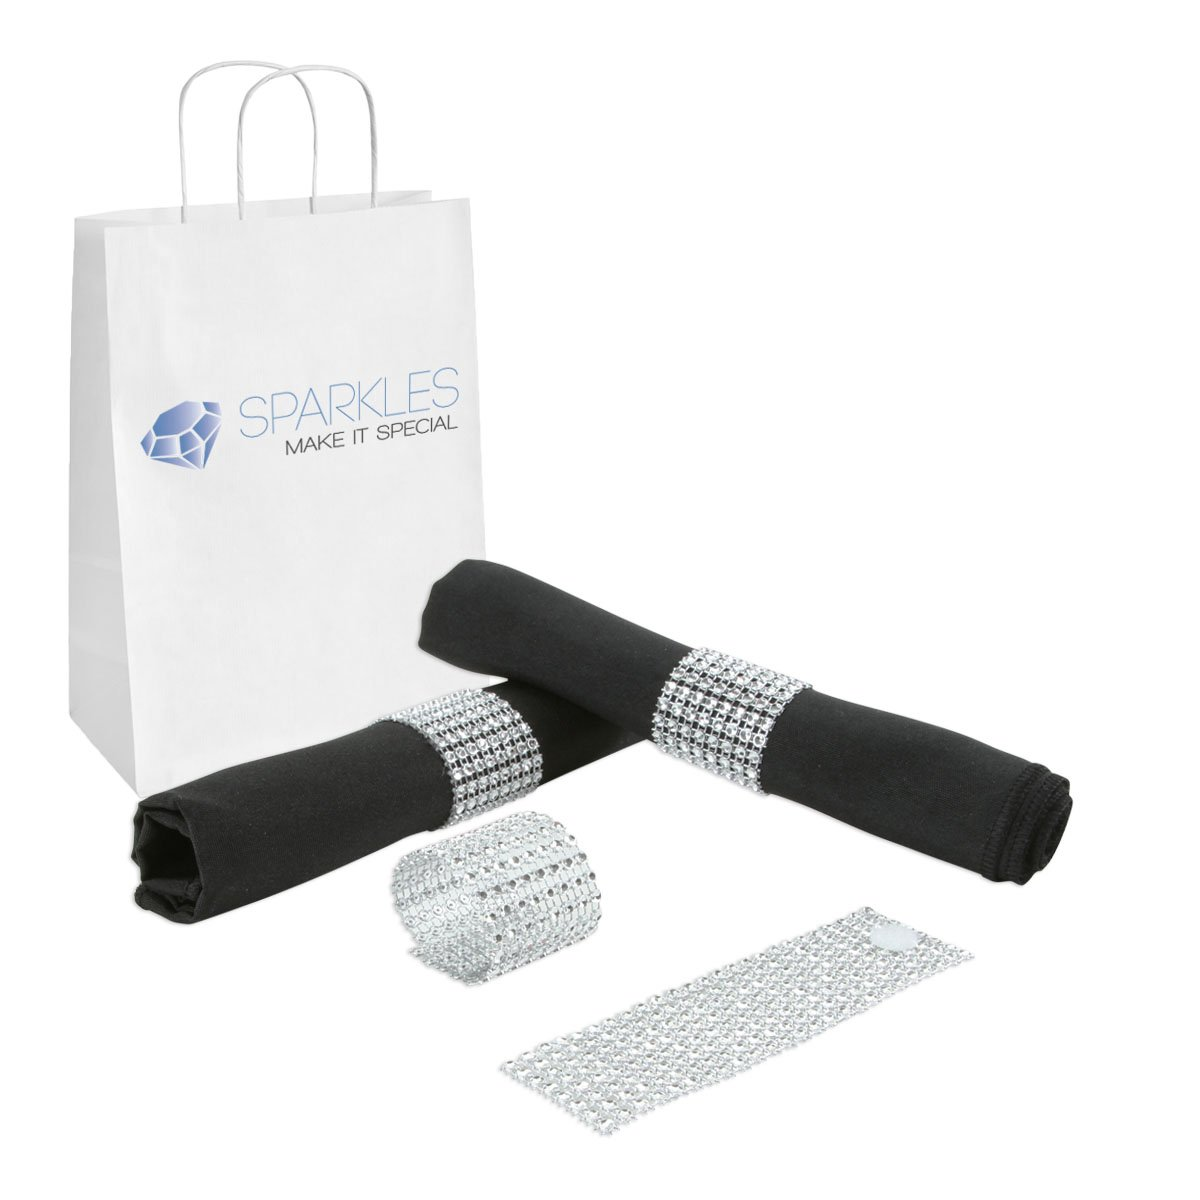 Sparkles Make It Special 400-pcs Rhinestone Diamond Napkin Rings - Reusable Velcro - 19 Colors - Choose Your Quantity - Silver - Wedding Party Dinner Banquet Reception - Chair Bow Cover